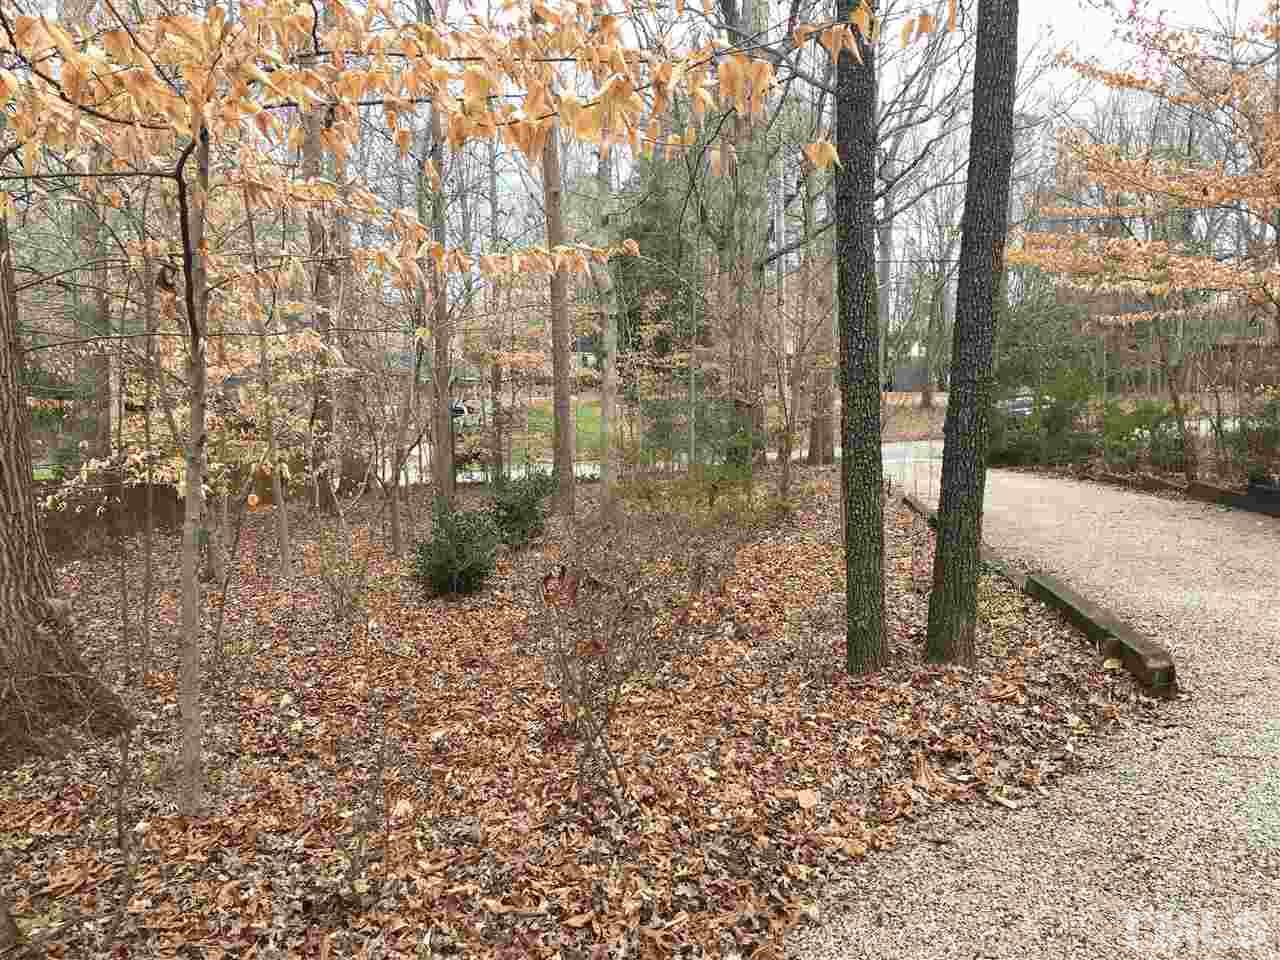 Amazing large wooded lot Inside the Beltline. Opportunity to build new in a fast growing area.  Easy access to the beltline, RDU, and Downtown Raleigh. Only 2.5 miles to the NC Art Museum and 4 miles to North Hills. Property being sold for land value. Offers will be reviewed with sellers Sunday, Feb 3 at 2pm.